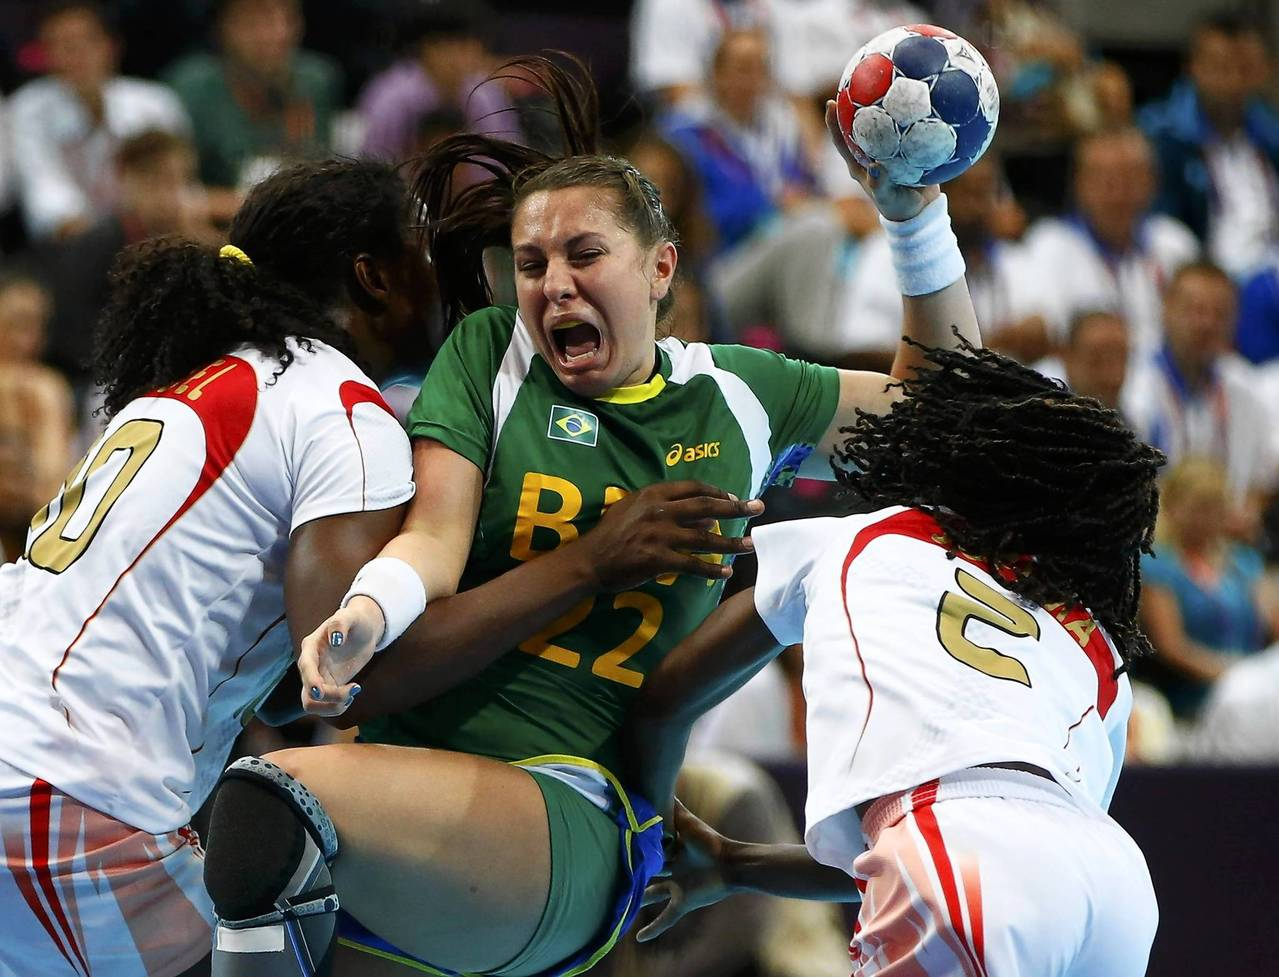 Angola's Isabel Fernandes and Joelma Viegas challenge Brazil's Mayara Moura in their women's handball Preliminaries Group A match at the Copper Box venue.